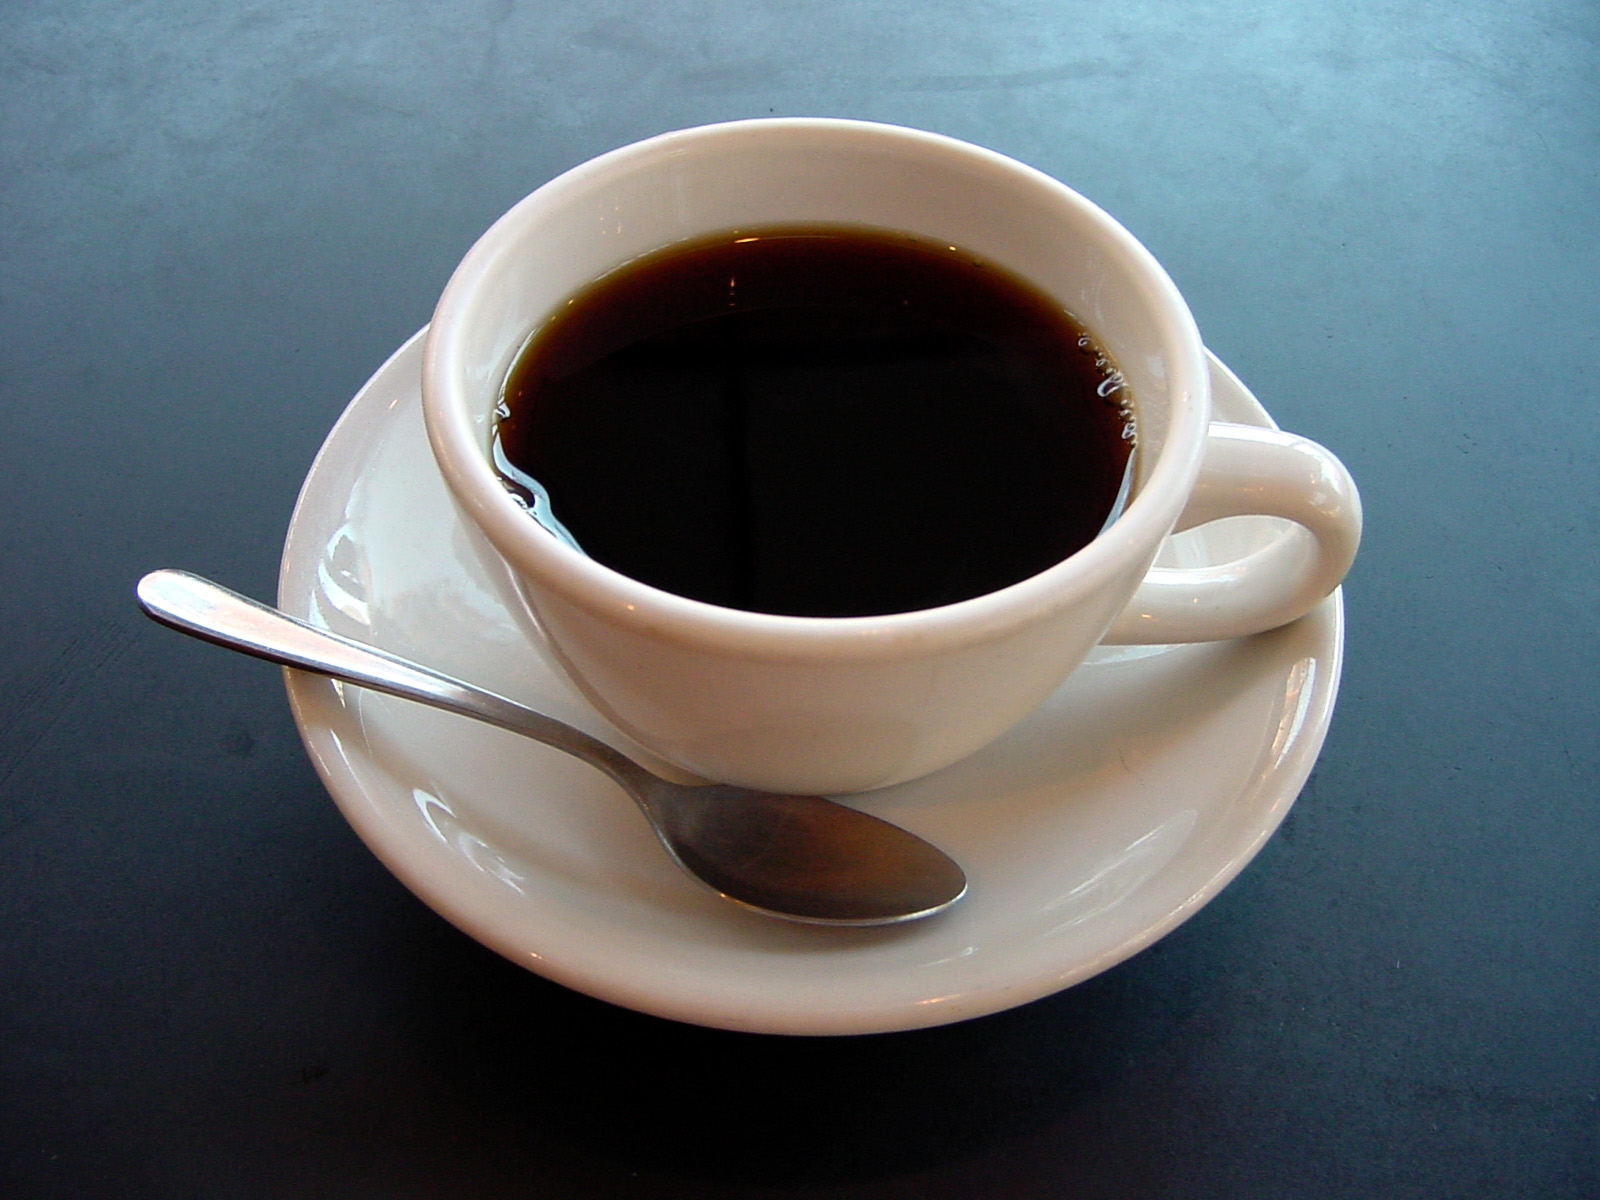 http://upload.wikimedia.org/wikipedia/commons/4/45/A_small_cup_of_coffee.JPG